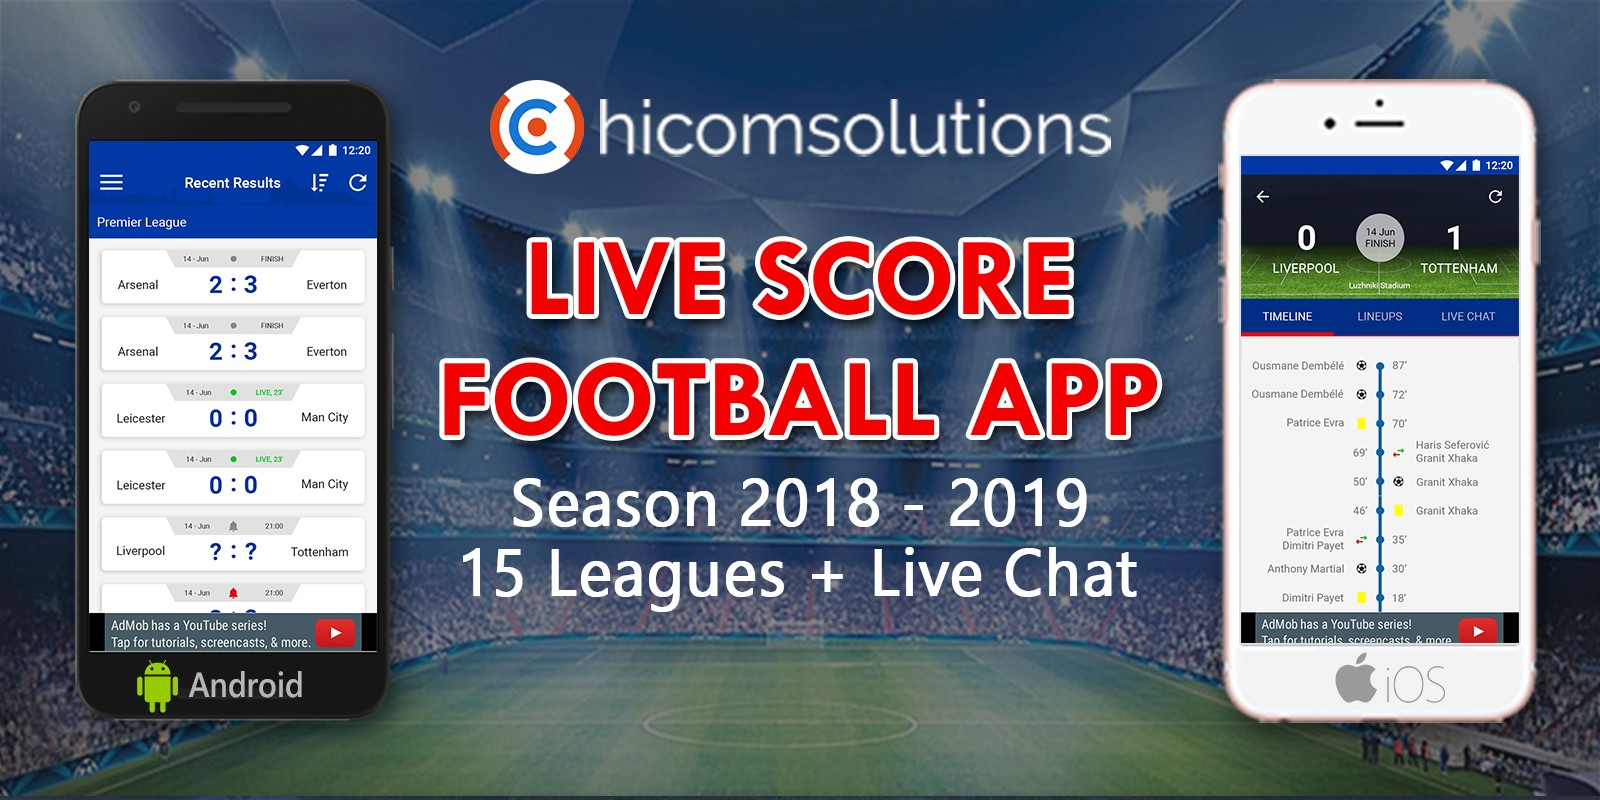 Live Score Football App Season 2018-19 For Android